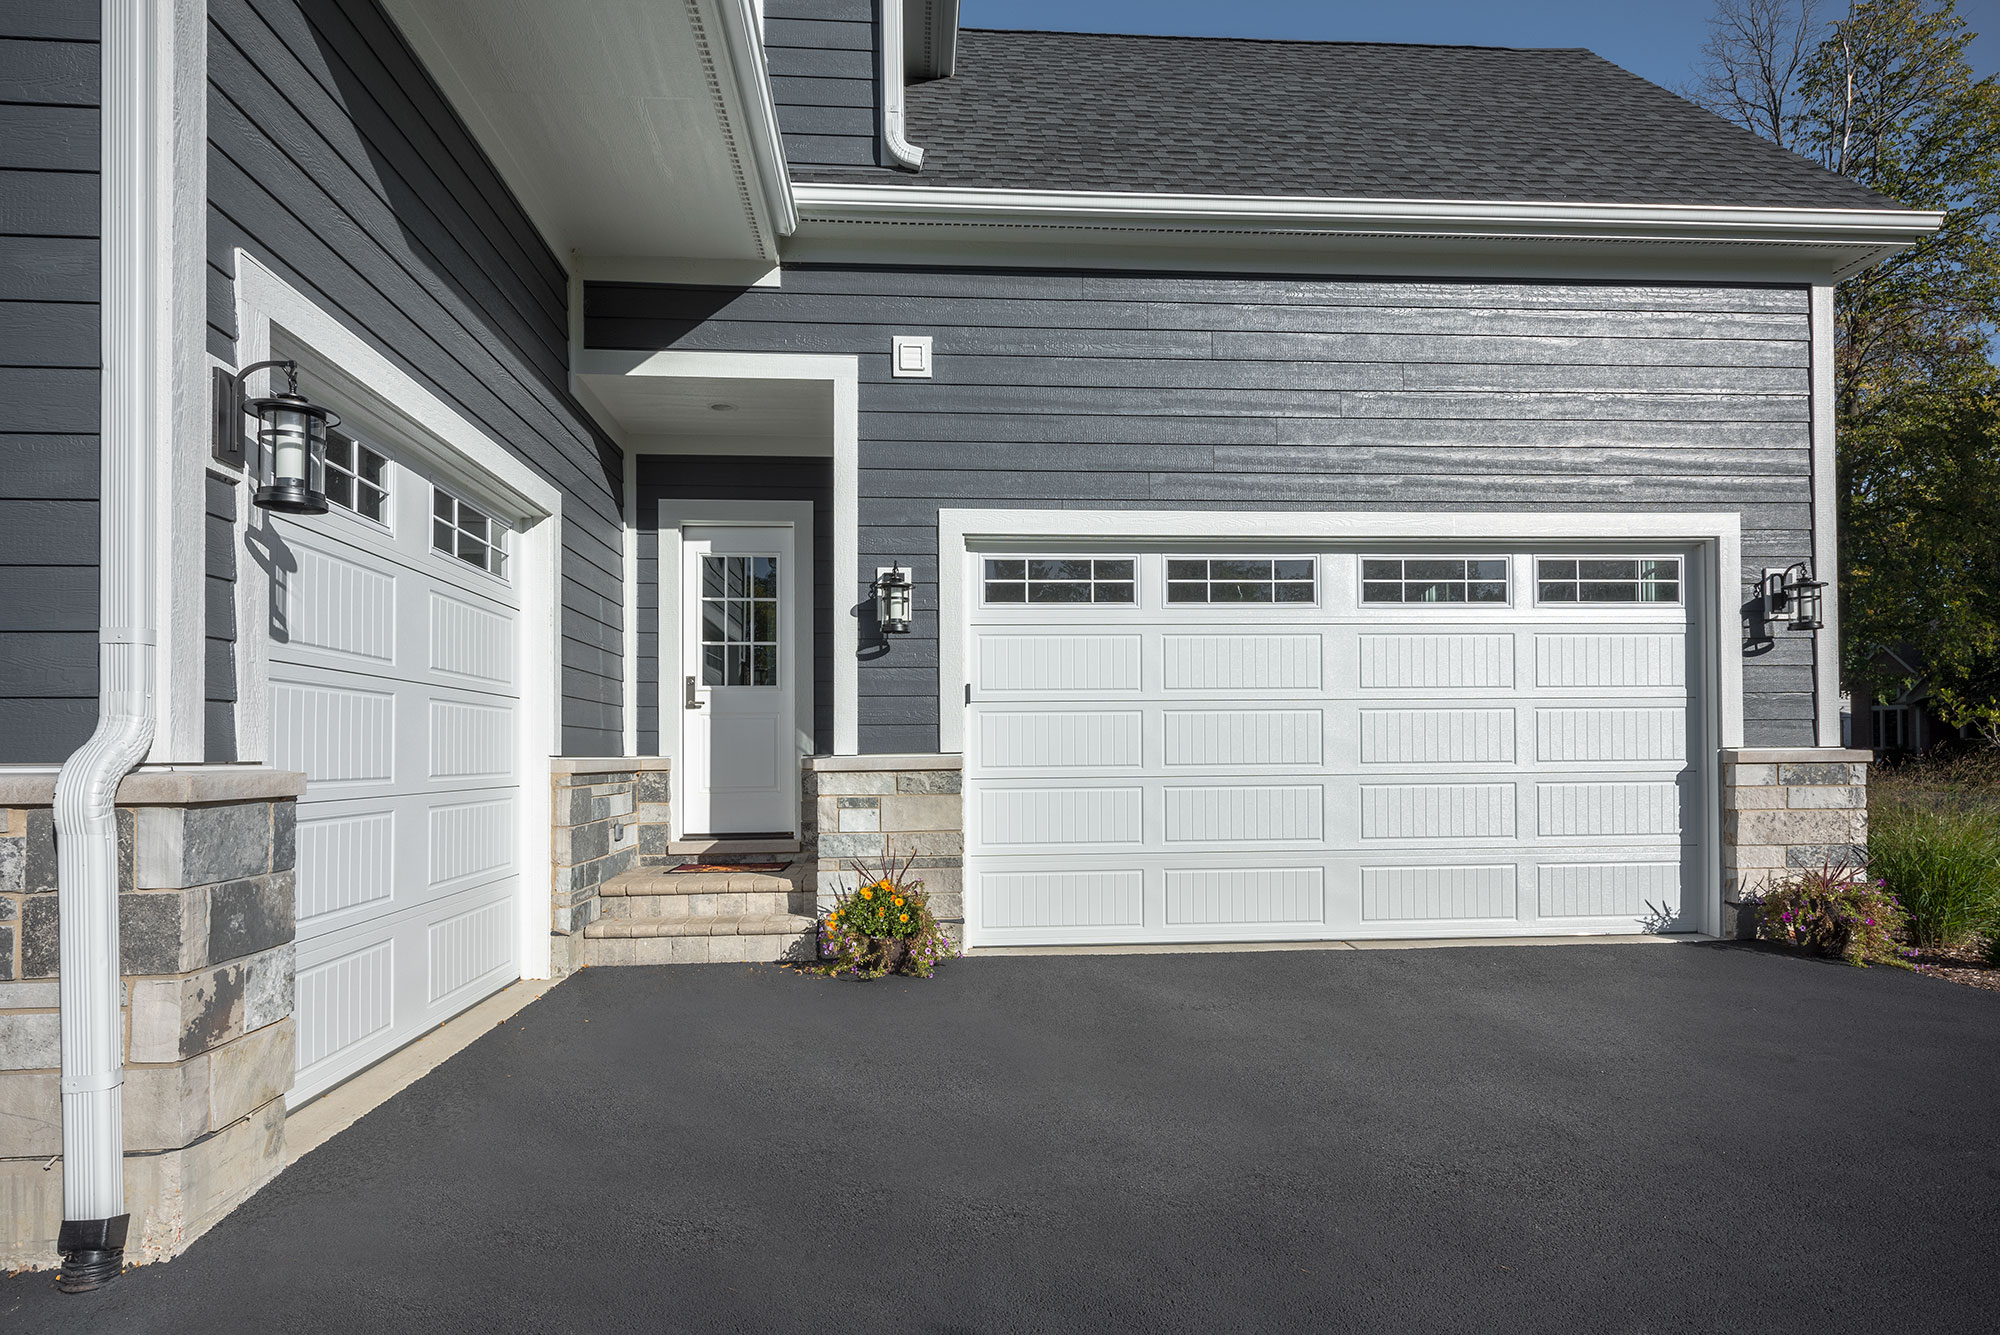 Garage And Front Doors That Match Garage Doors Sales Installation Service Repair Poldoor